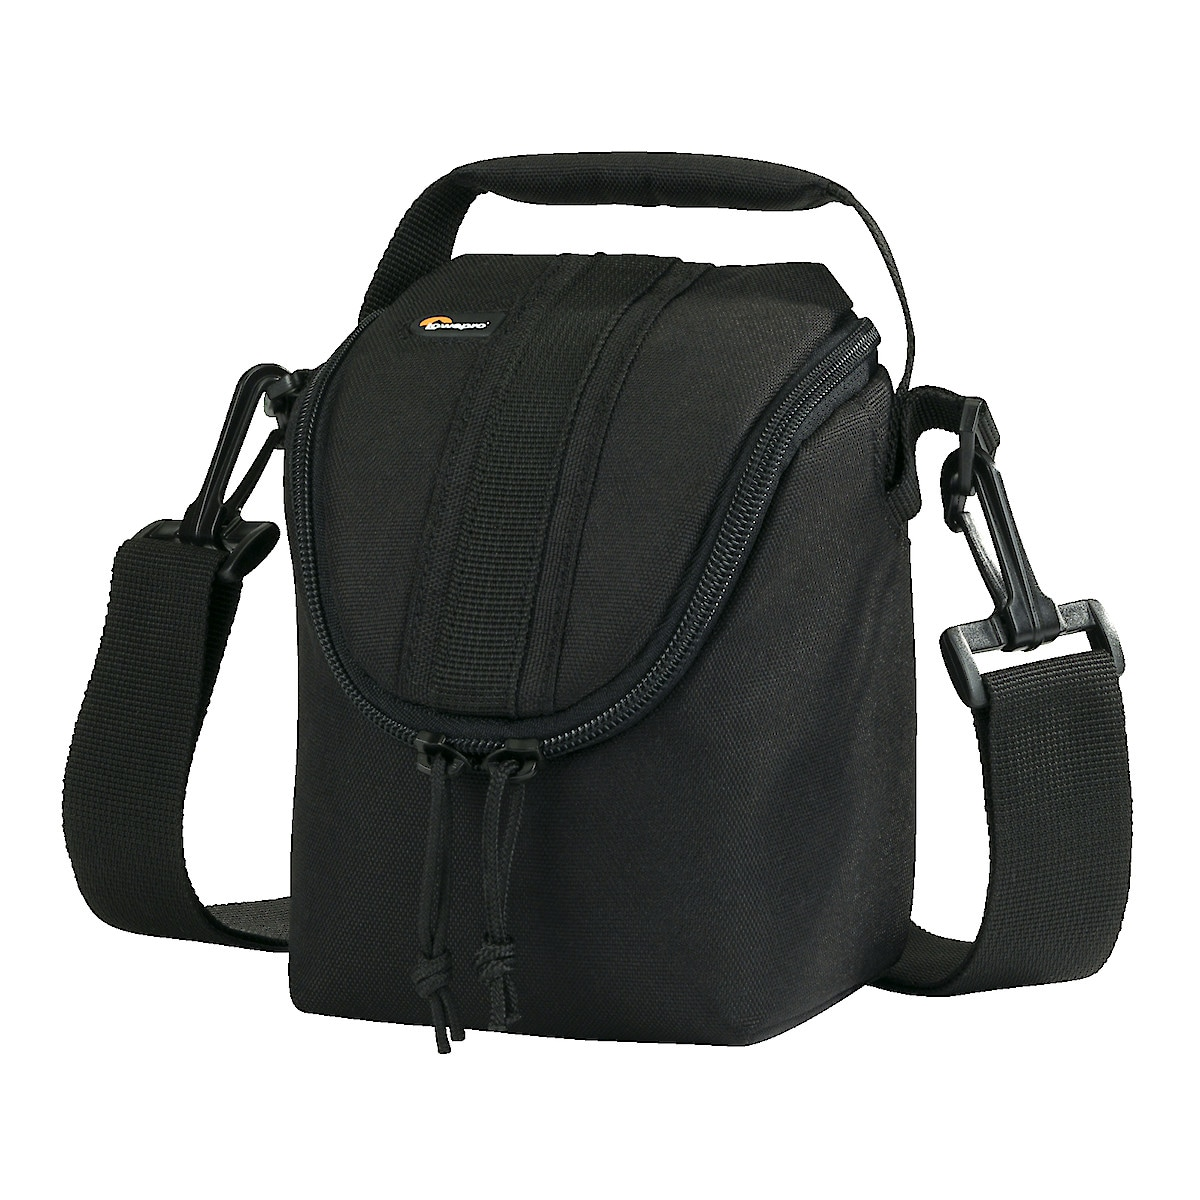 Lowepro Adventura Ultra zoom 100 Camera Bag